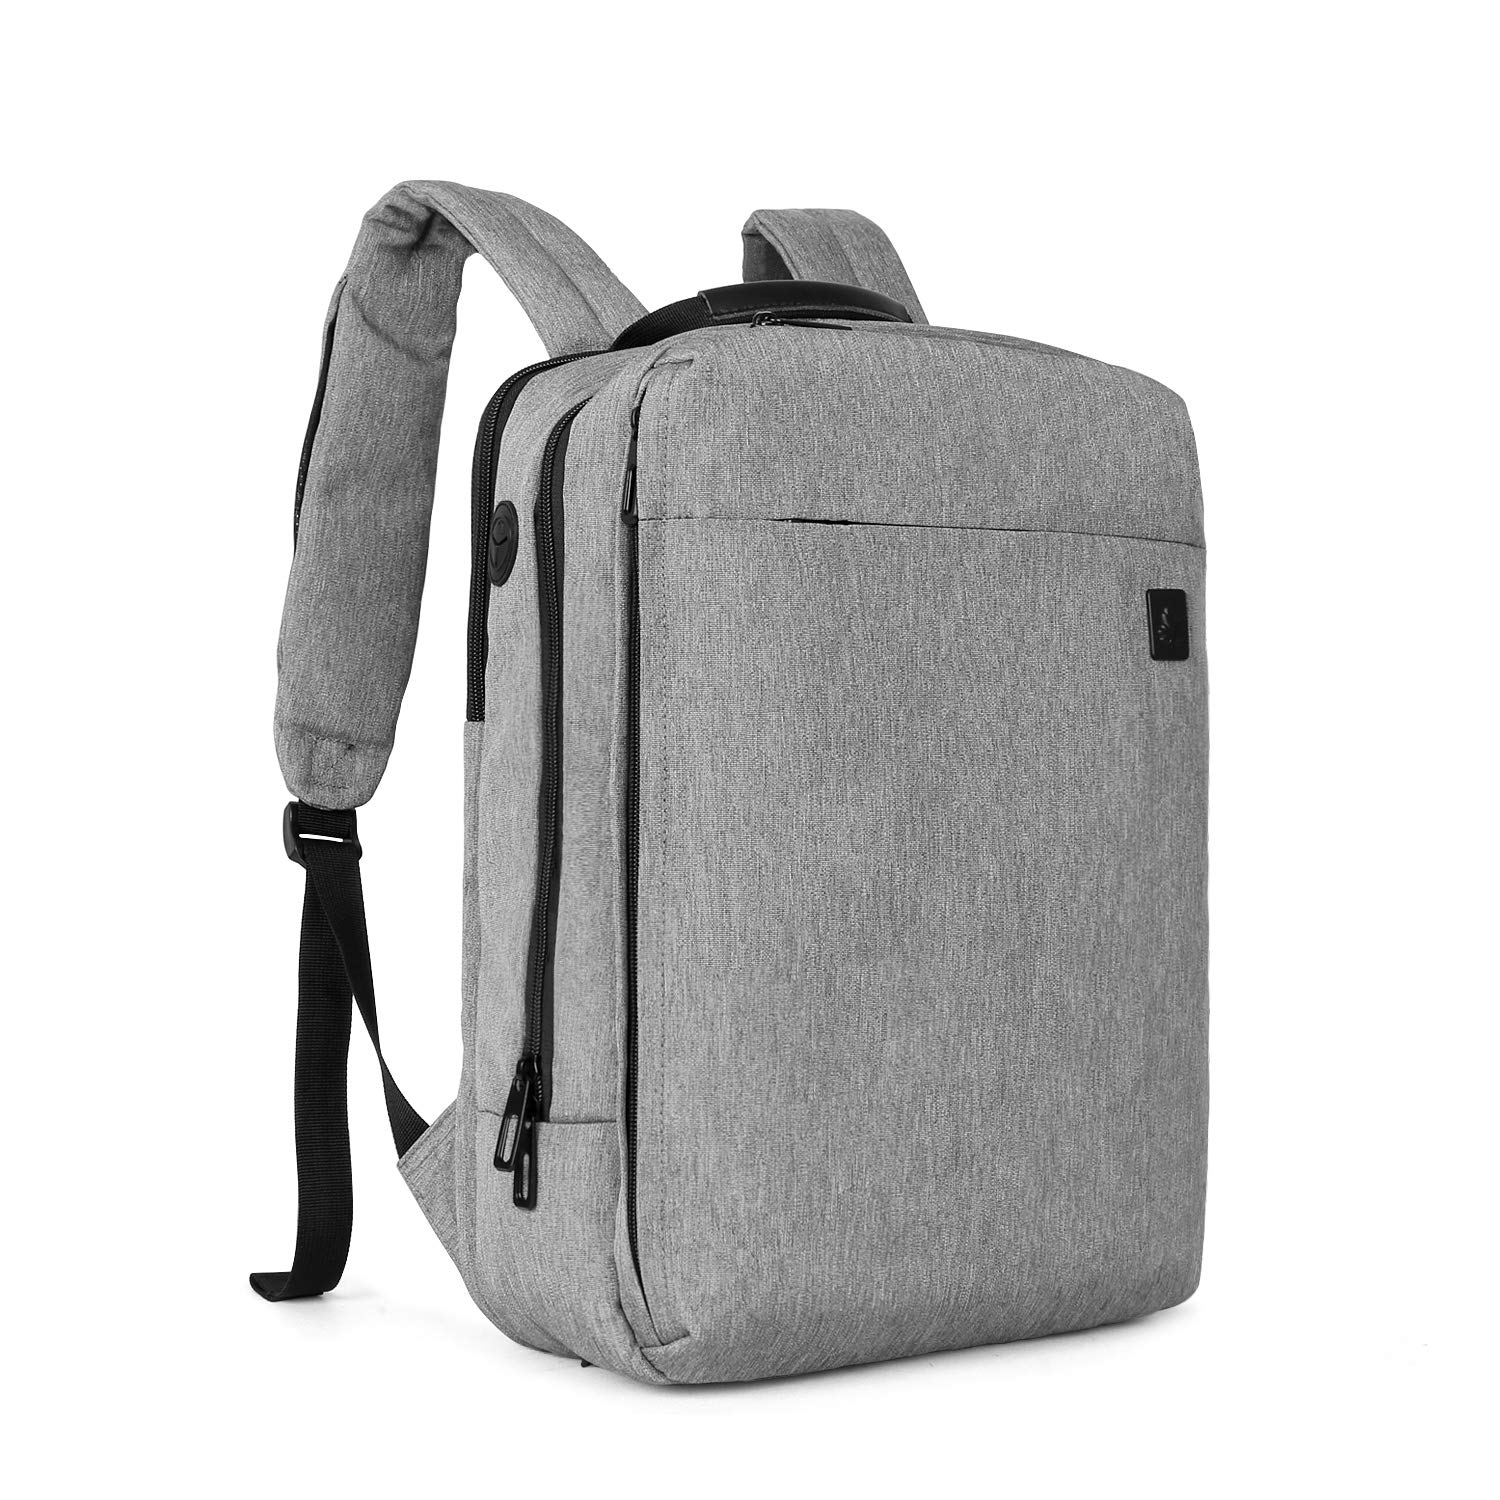 Has the most innovative & convenient storage of any backpack